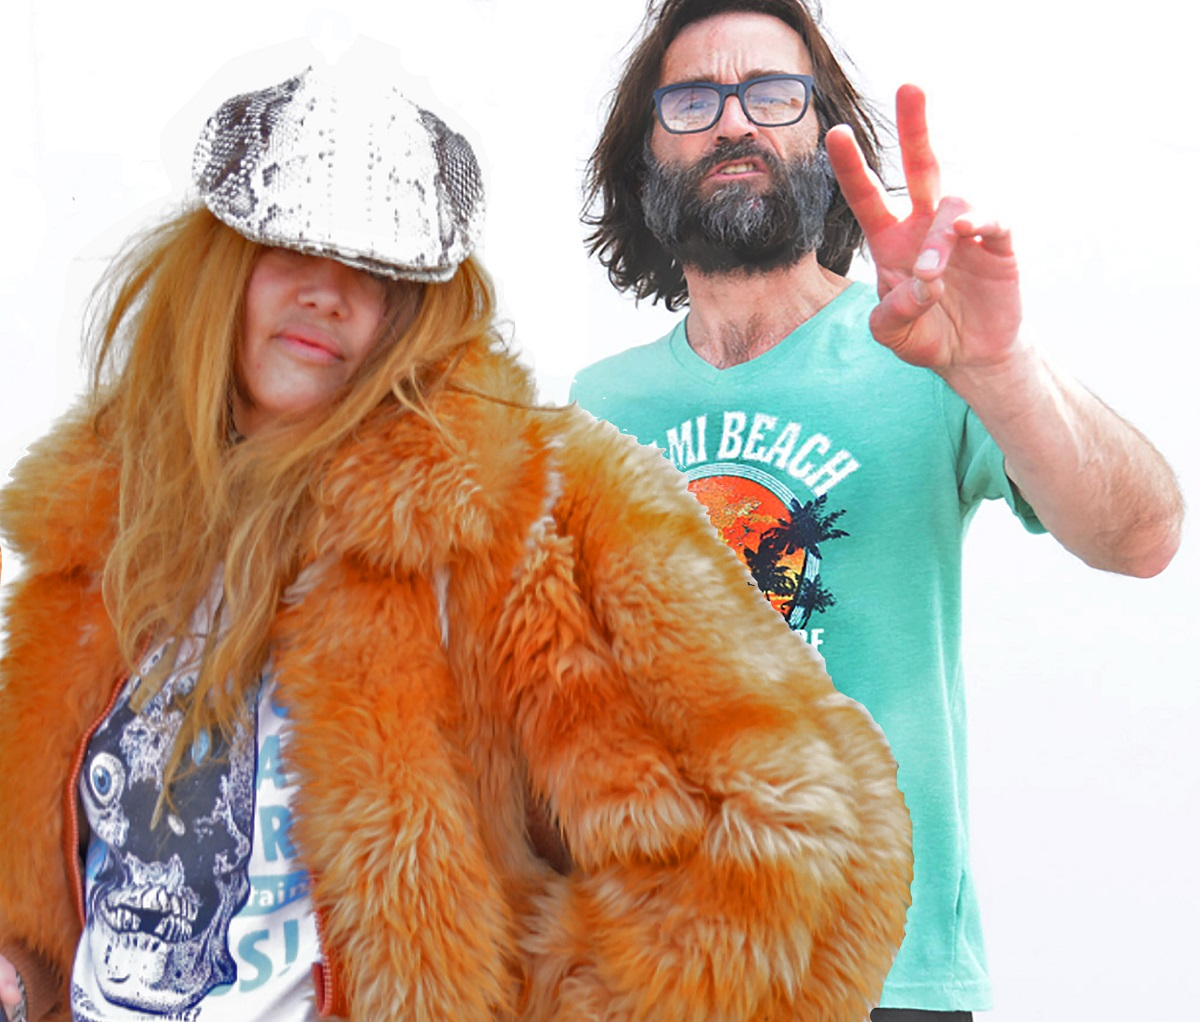 Royal_Trux_Photo_courtesy_of_Fat_Possum_Records